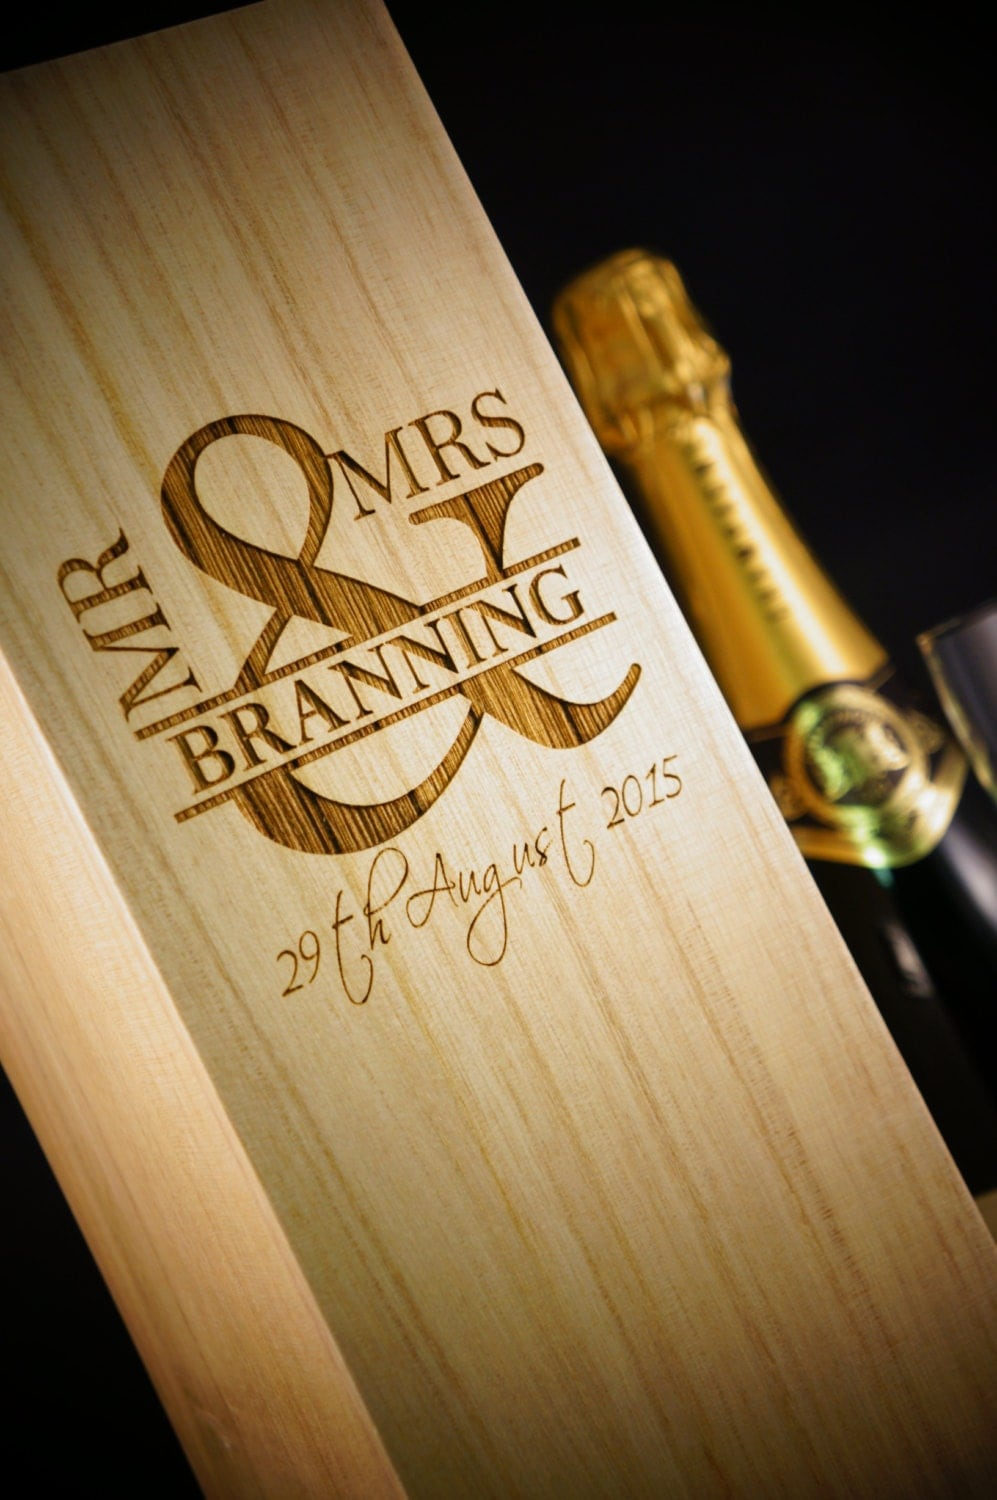 Personalised Wedding Gifts Wine : Personalised Wine Box Wedding Gift Mr and Mrs Wine by YBCMDesigns